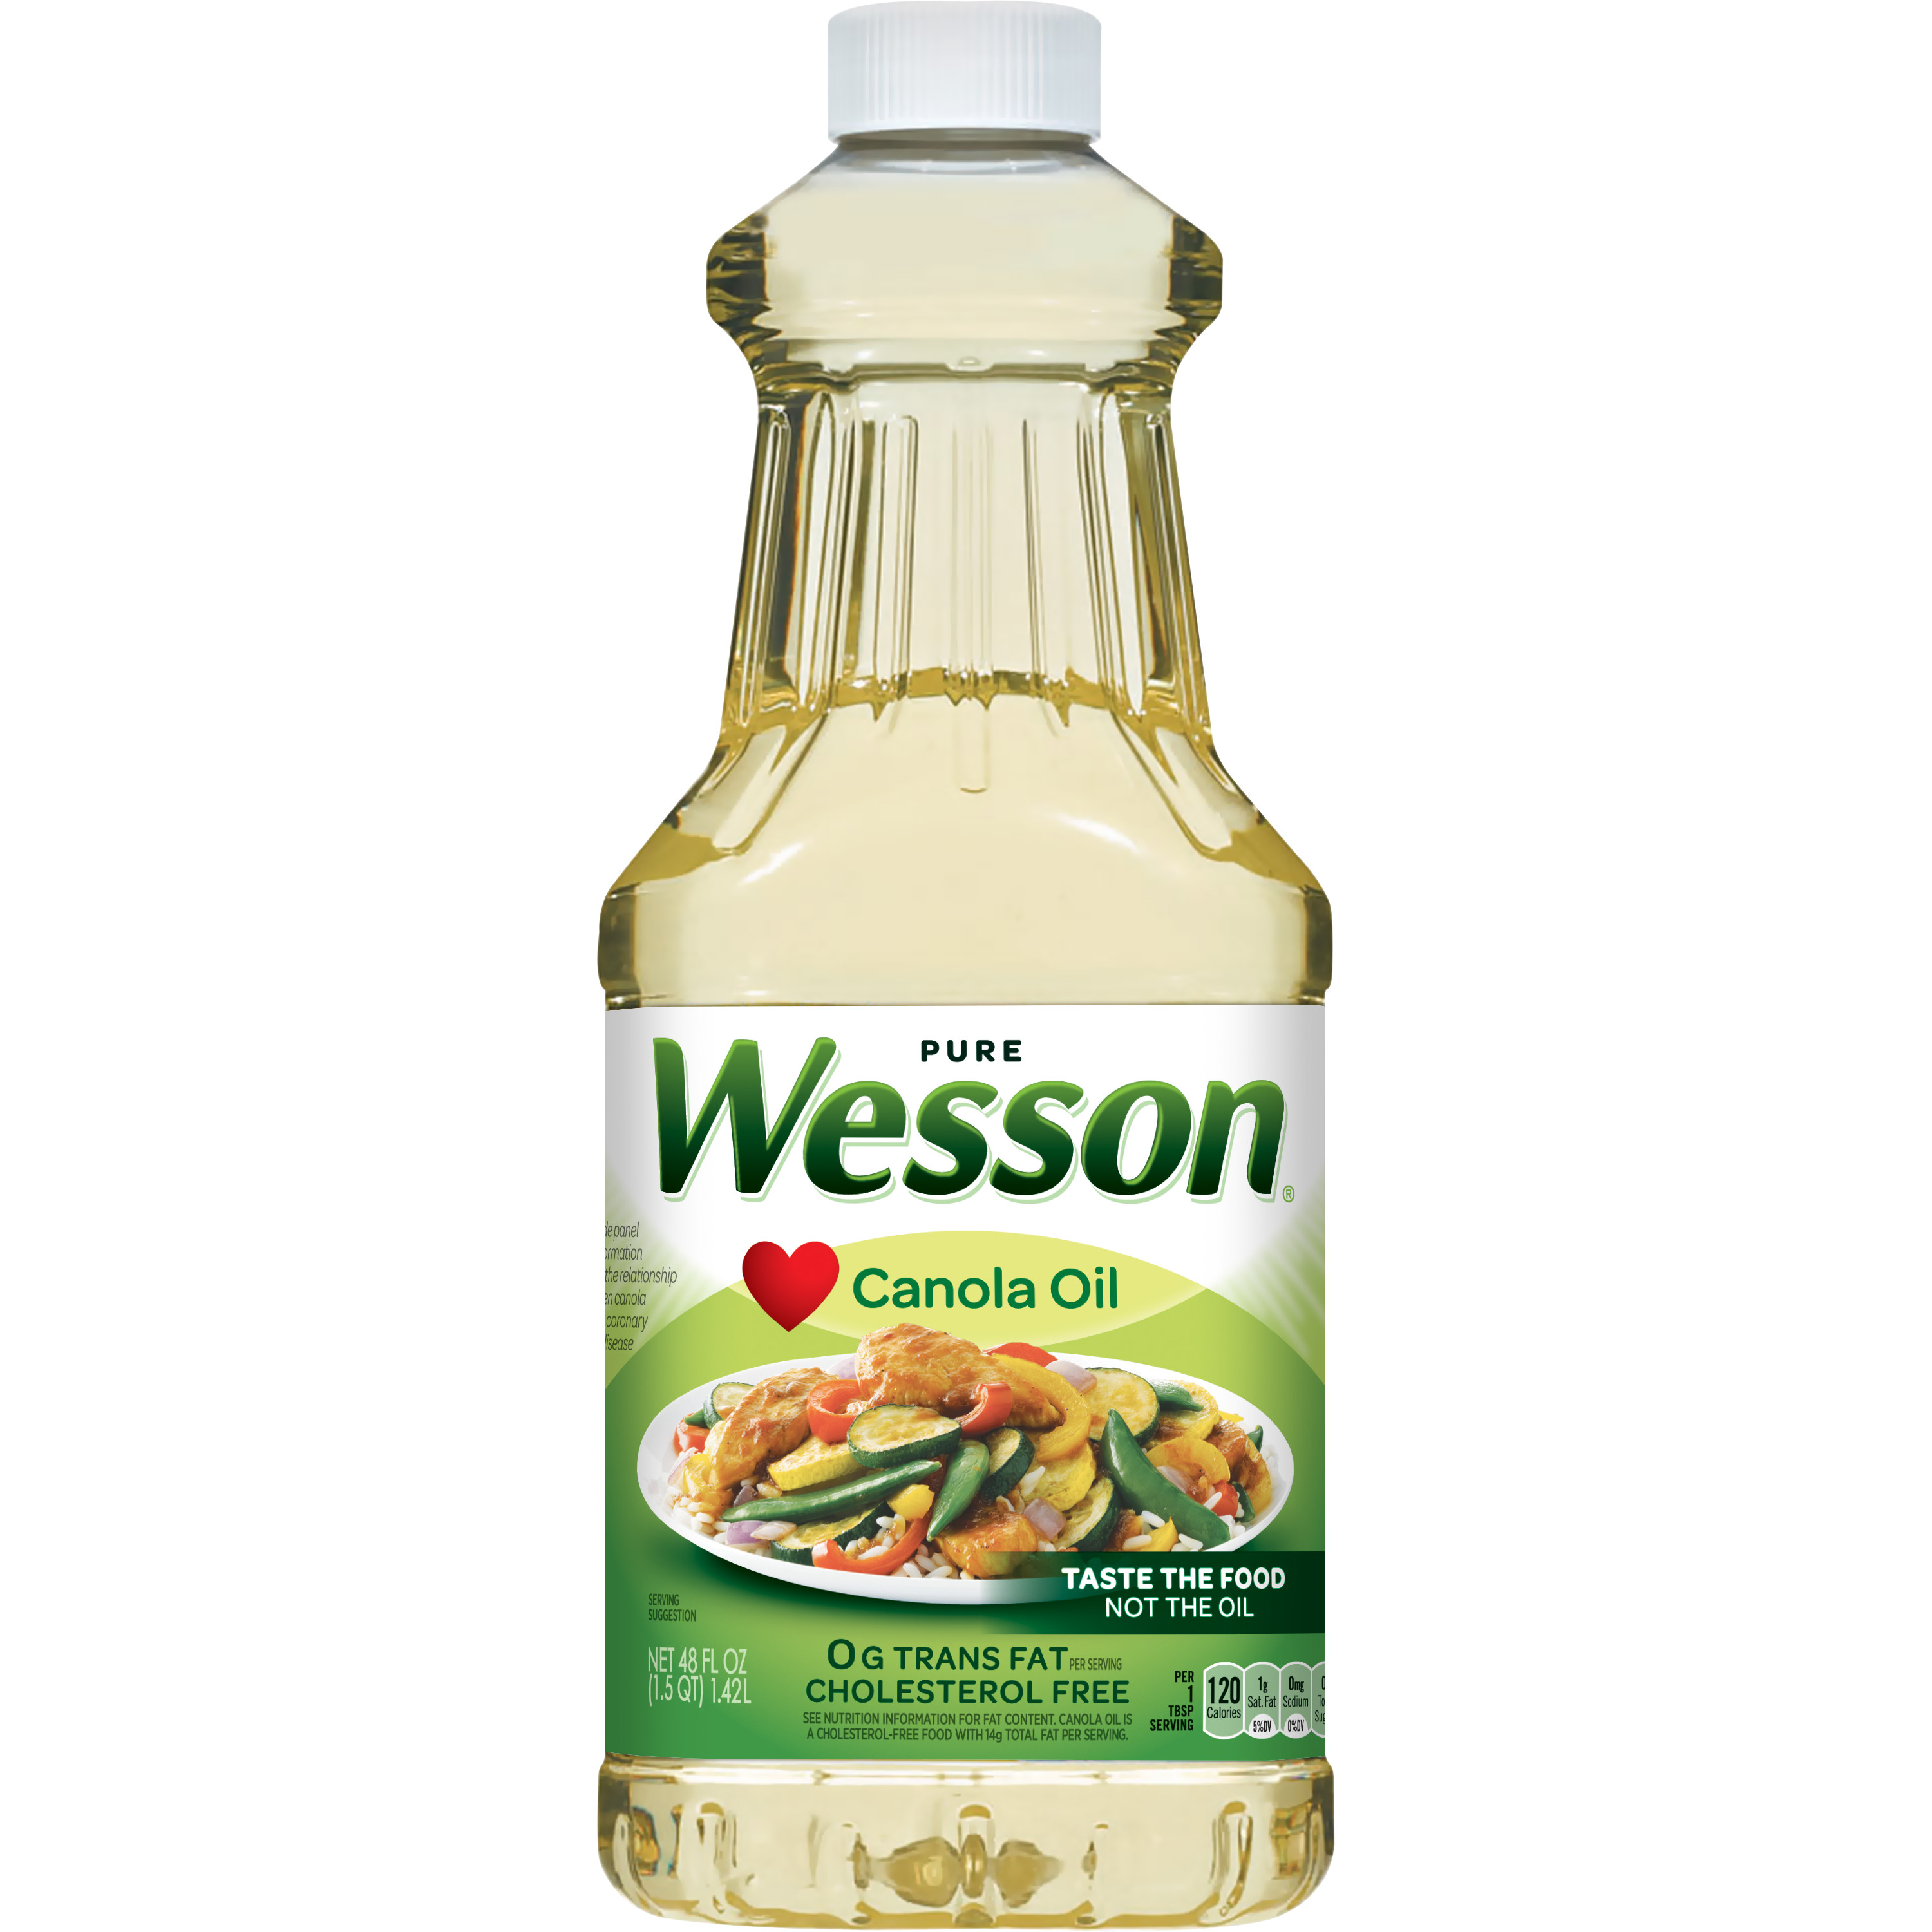 (2 Pack) Wesson Pure Canola Oil, 48 Fl Oz